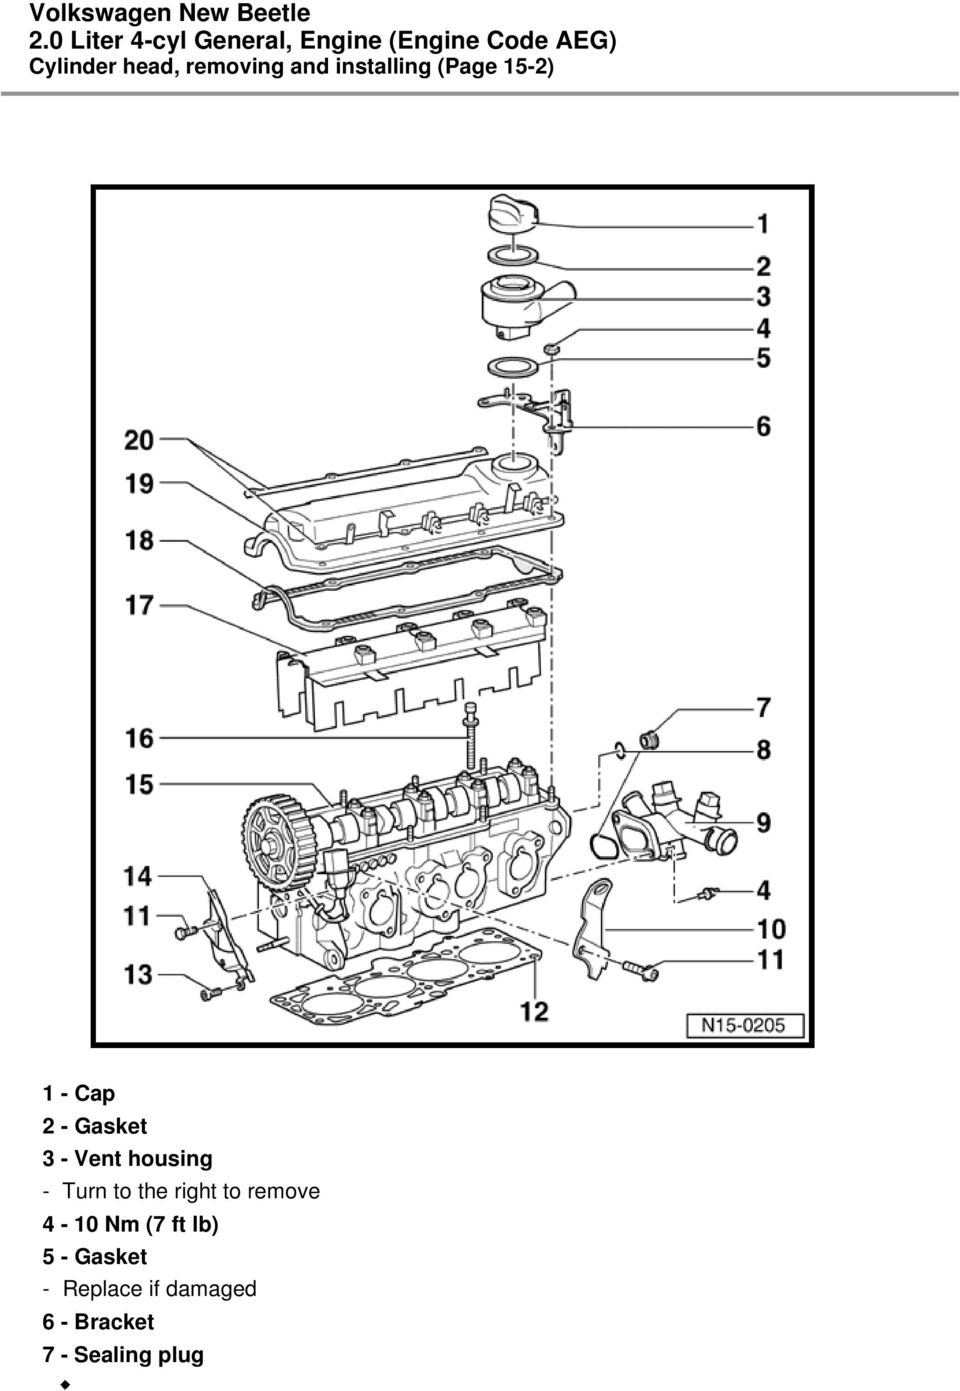 Vw Jetta 2 0 Engine Diagram Camshaft Lifters Wiring Library To The Right Remove 4 10 Nm 7 Ft Lb 5